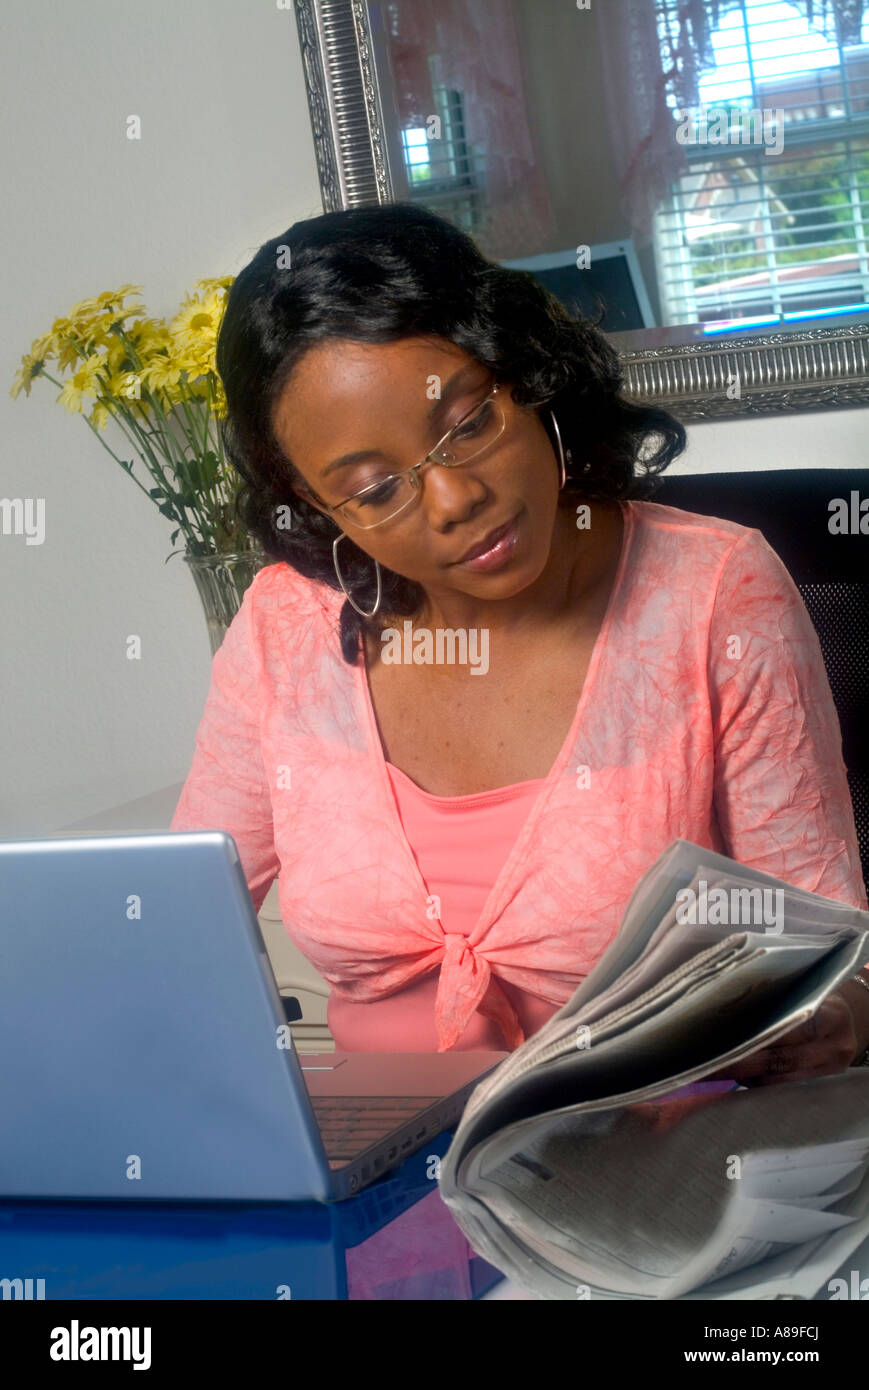 a young pretty ethnic black woman is working on her laptop and stock